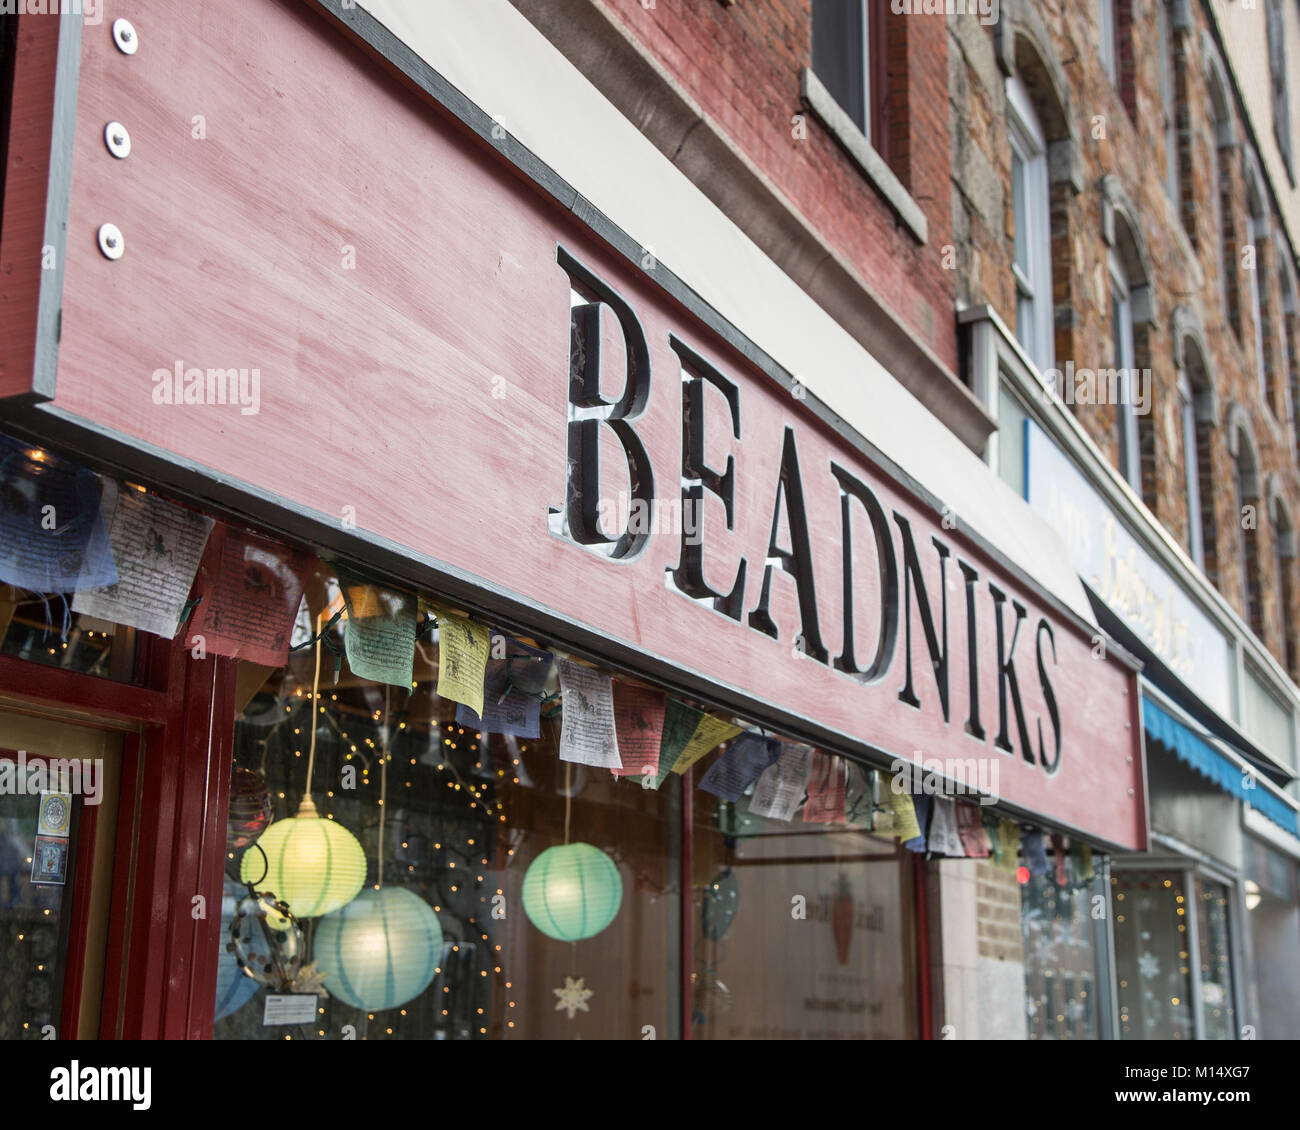 A store selling beads in Brattleboro, Vermont - Stock Image